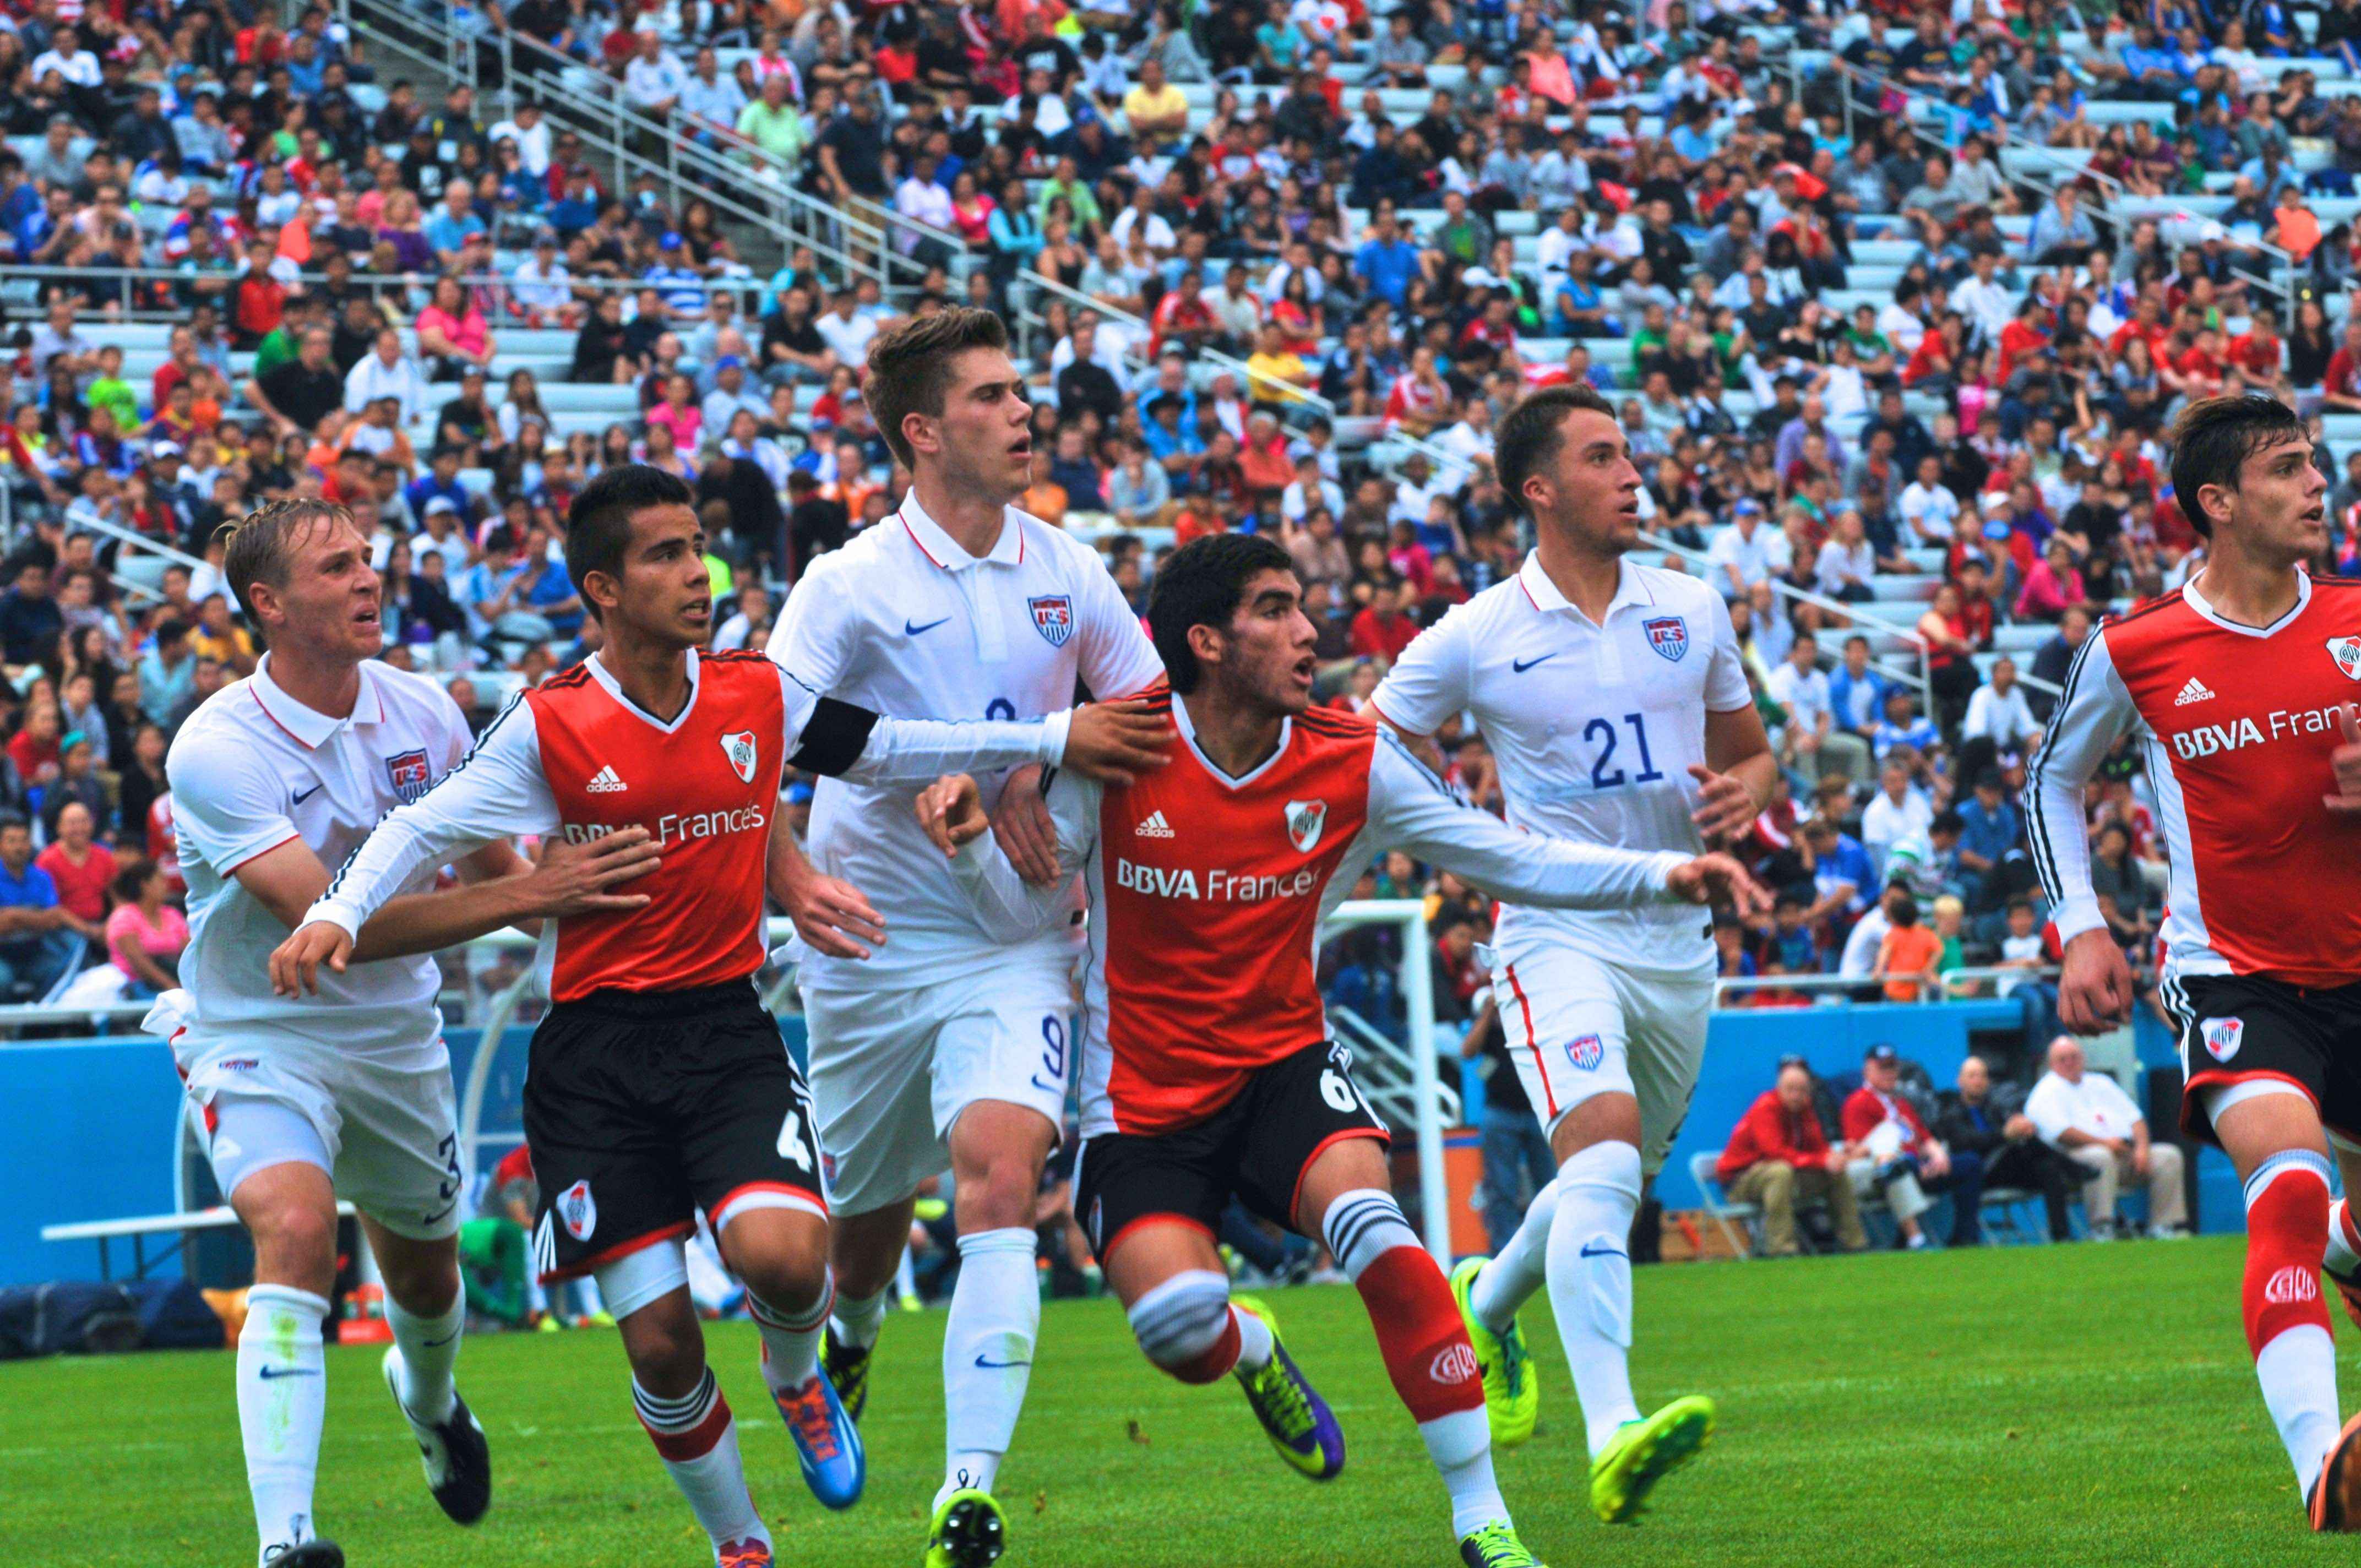 U.S.-U20-National-Team-from-2014.-They-will-be-appearing-in-this-year's-Dr-Pepper-Dallas-Cup